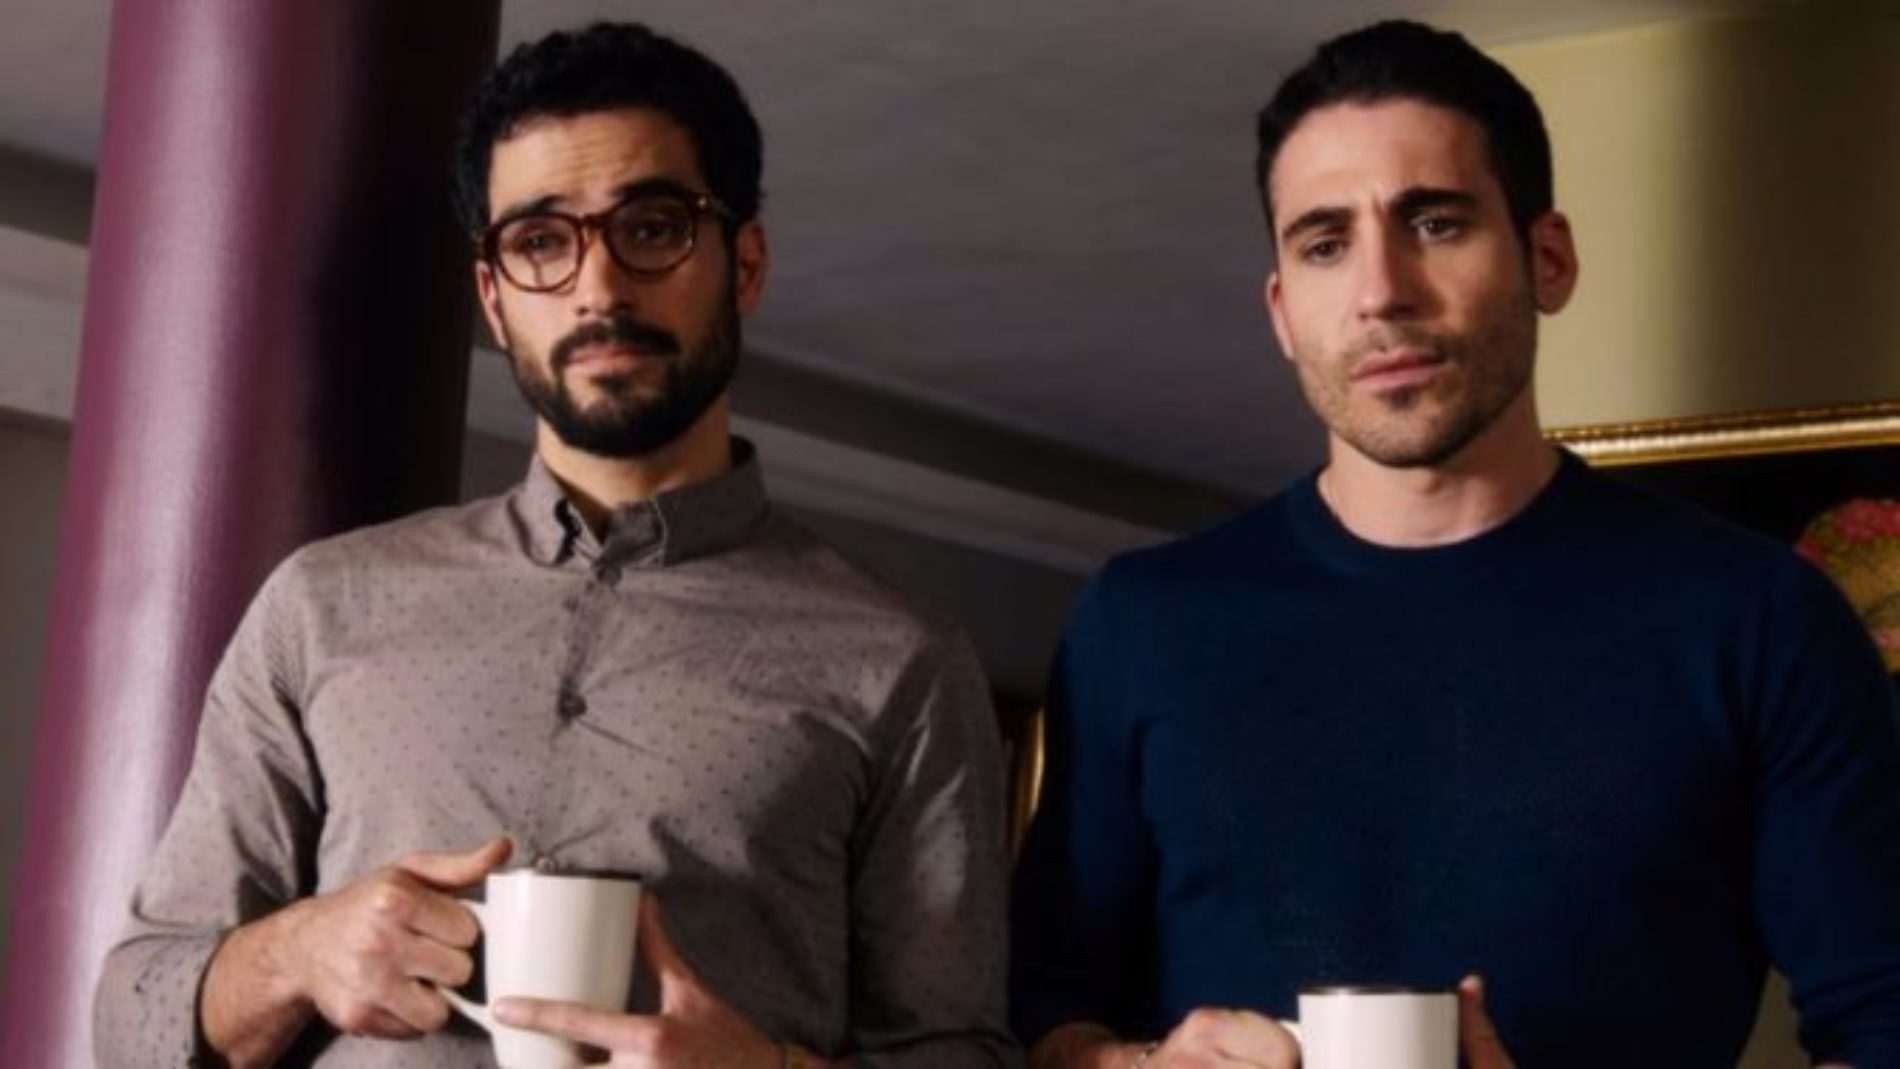 Straight guy goes on homophobic rant about 'Sense8' and the Internet lashes back